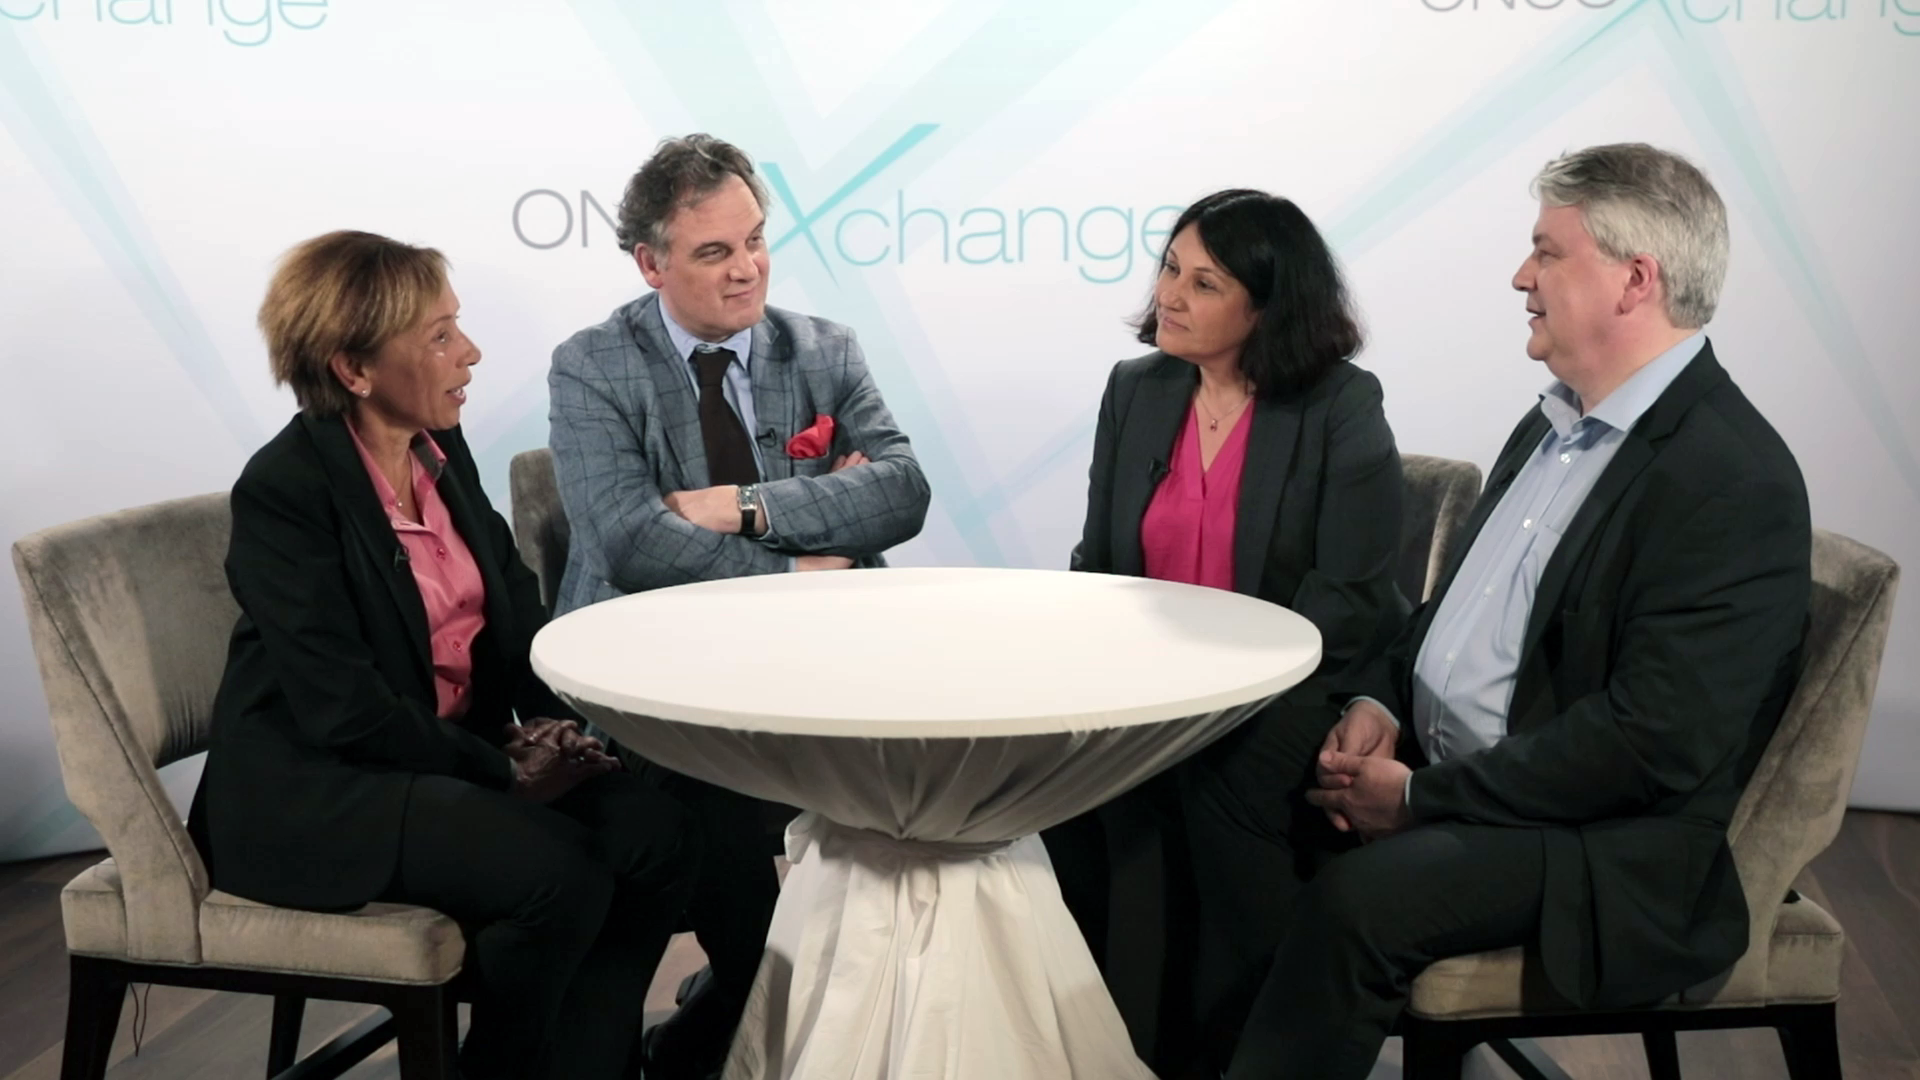 Ask the Experts Panel Program: Update on ASCO/CAP Guidelines Of ER, PR and HER2 Testing in EBC and MBC